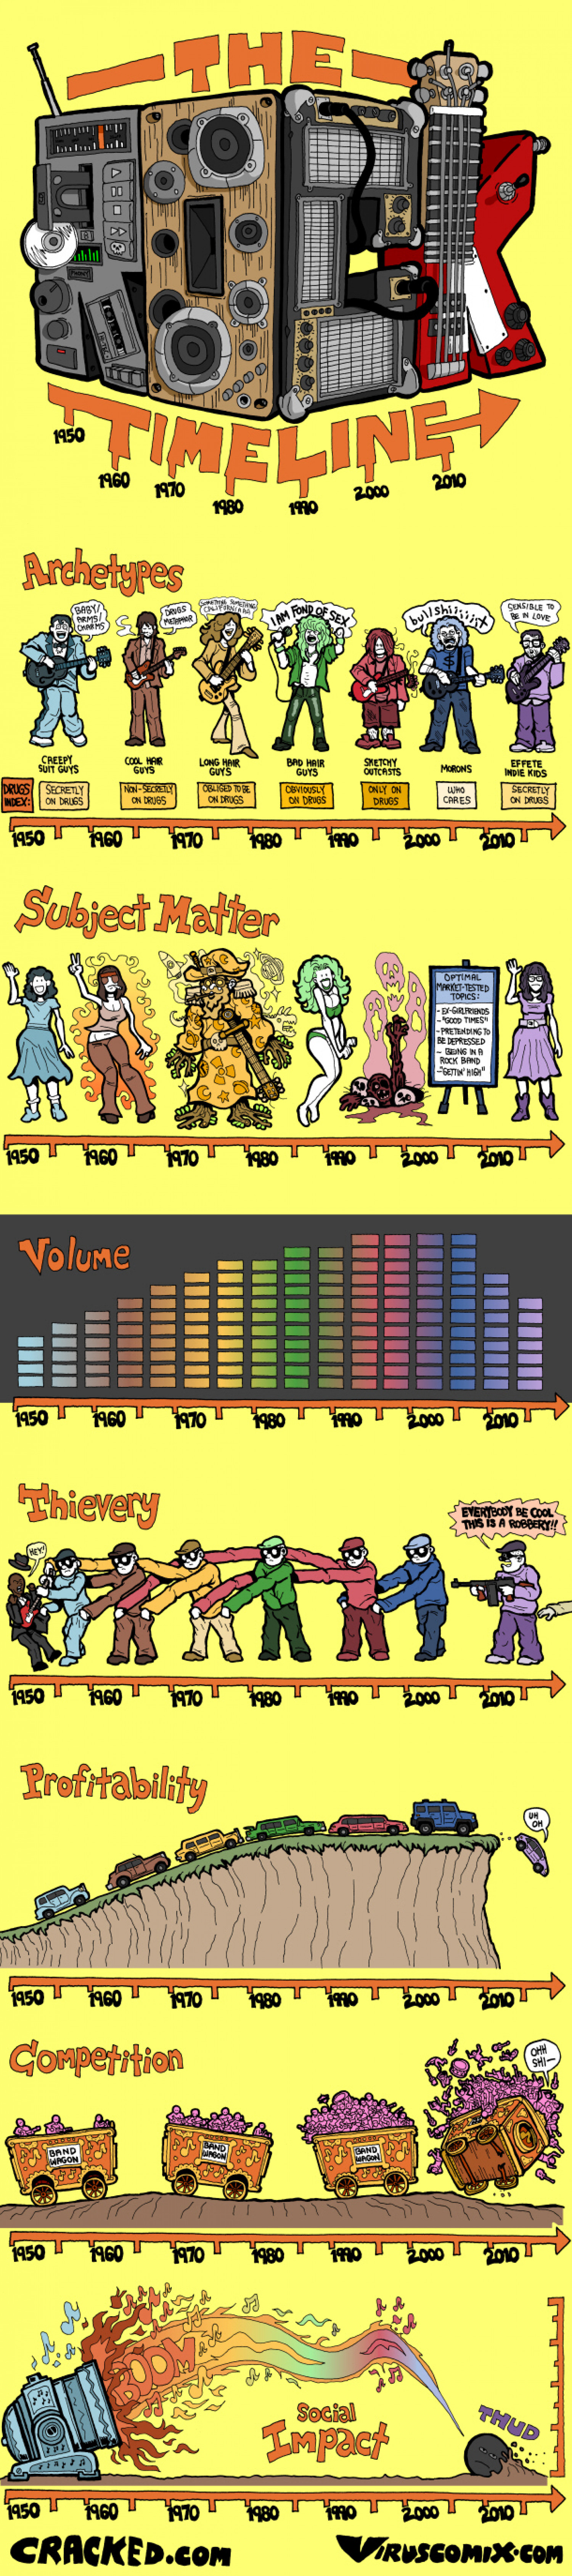 The Rock Timeline Infographic